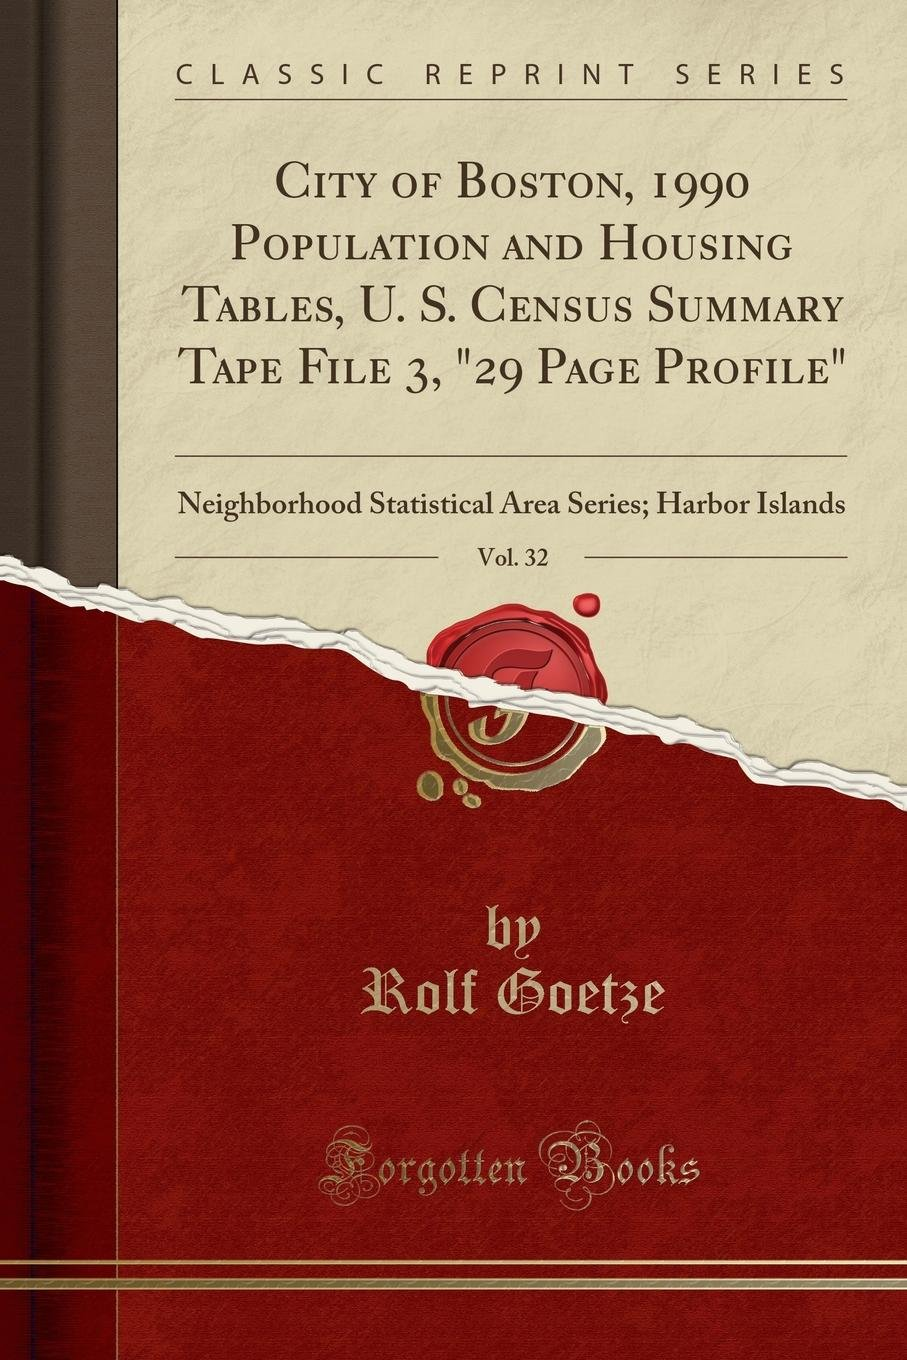 "City of Boston, 1990 Population and Housing Tables, U. S. Census Summary Tape File 3,""29 Page Profile, Vol. 32: Neighborhood Statistical Area Series; Harbor Islands (Classic Reprint) ebook"